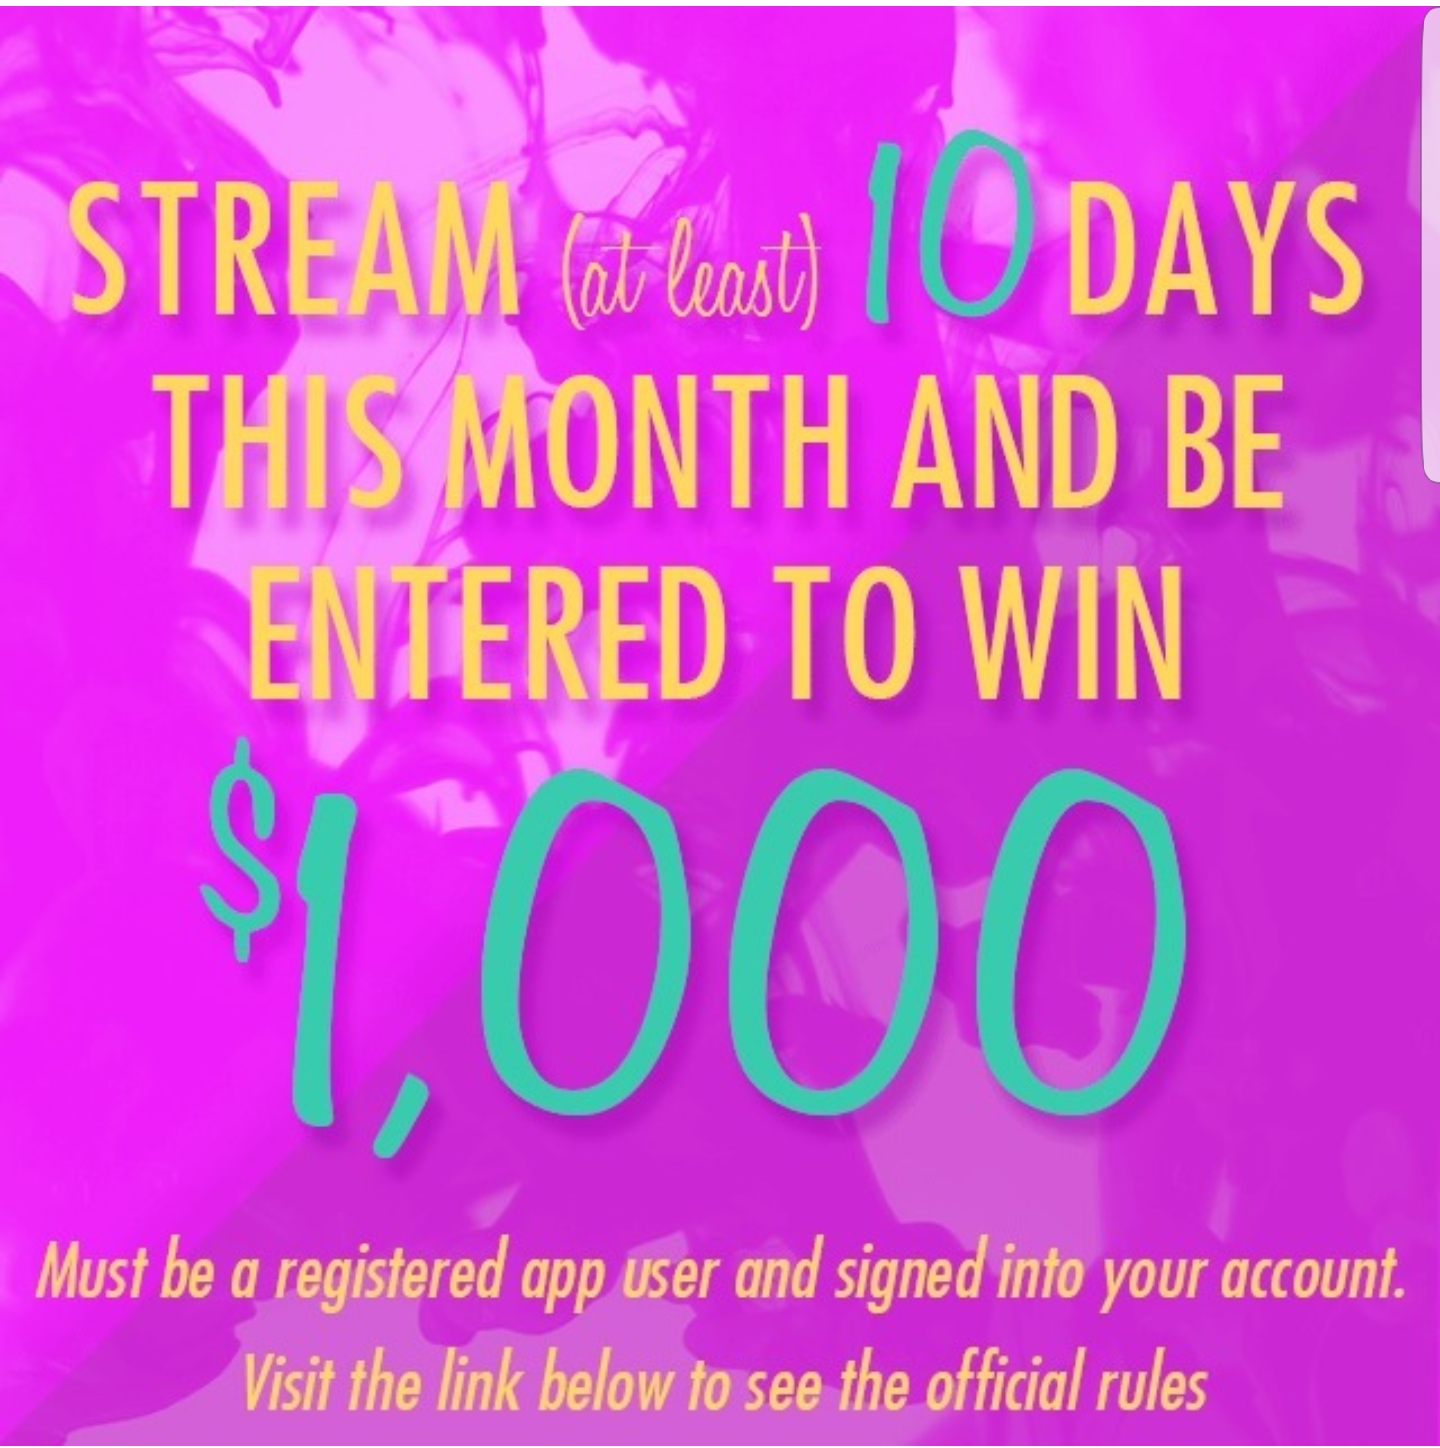 Clip 10day streaming contest - sept 17